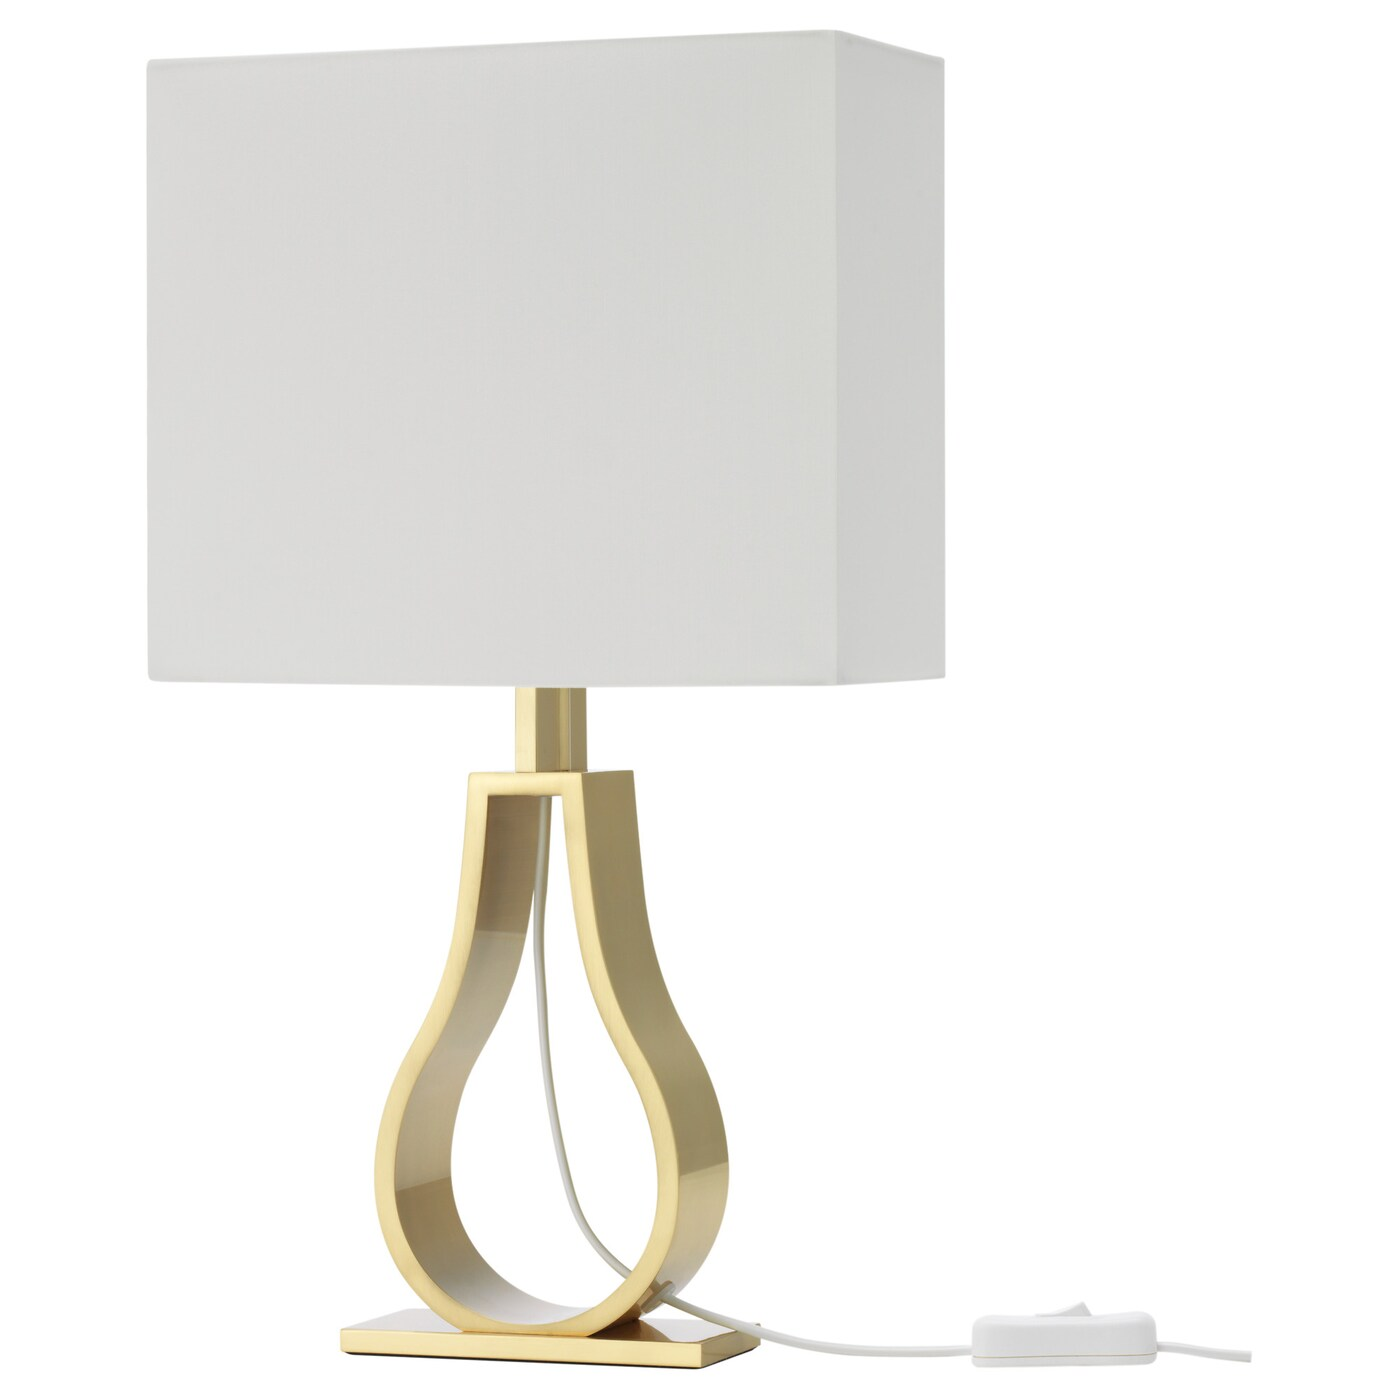 Lampara Noche Ikea Table Lamps And Bedside Lamps Ikea Ireland